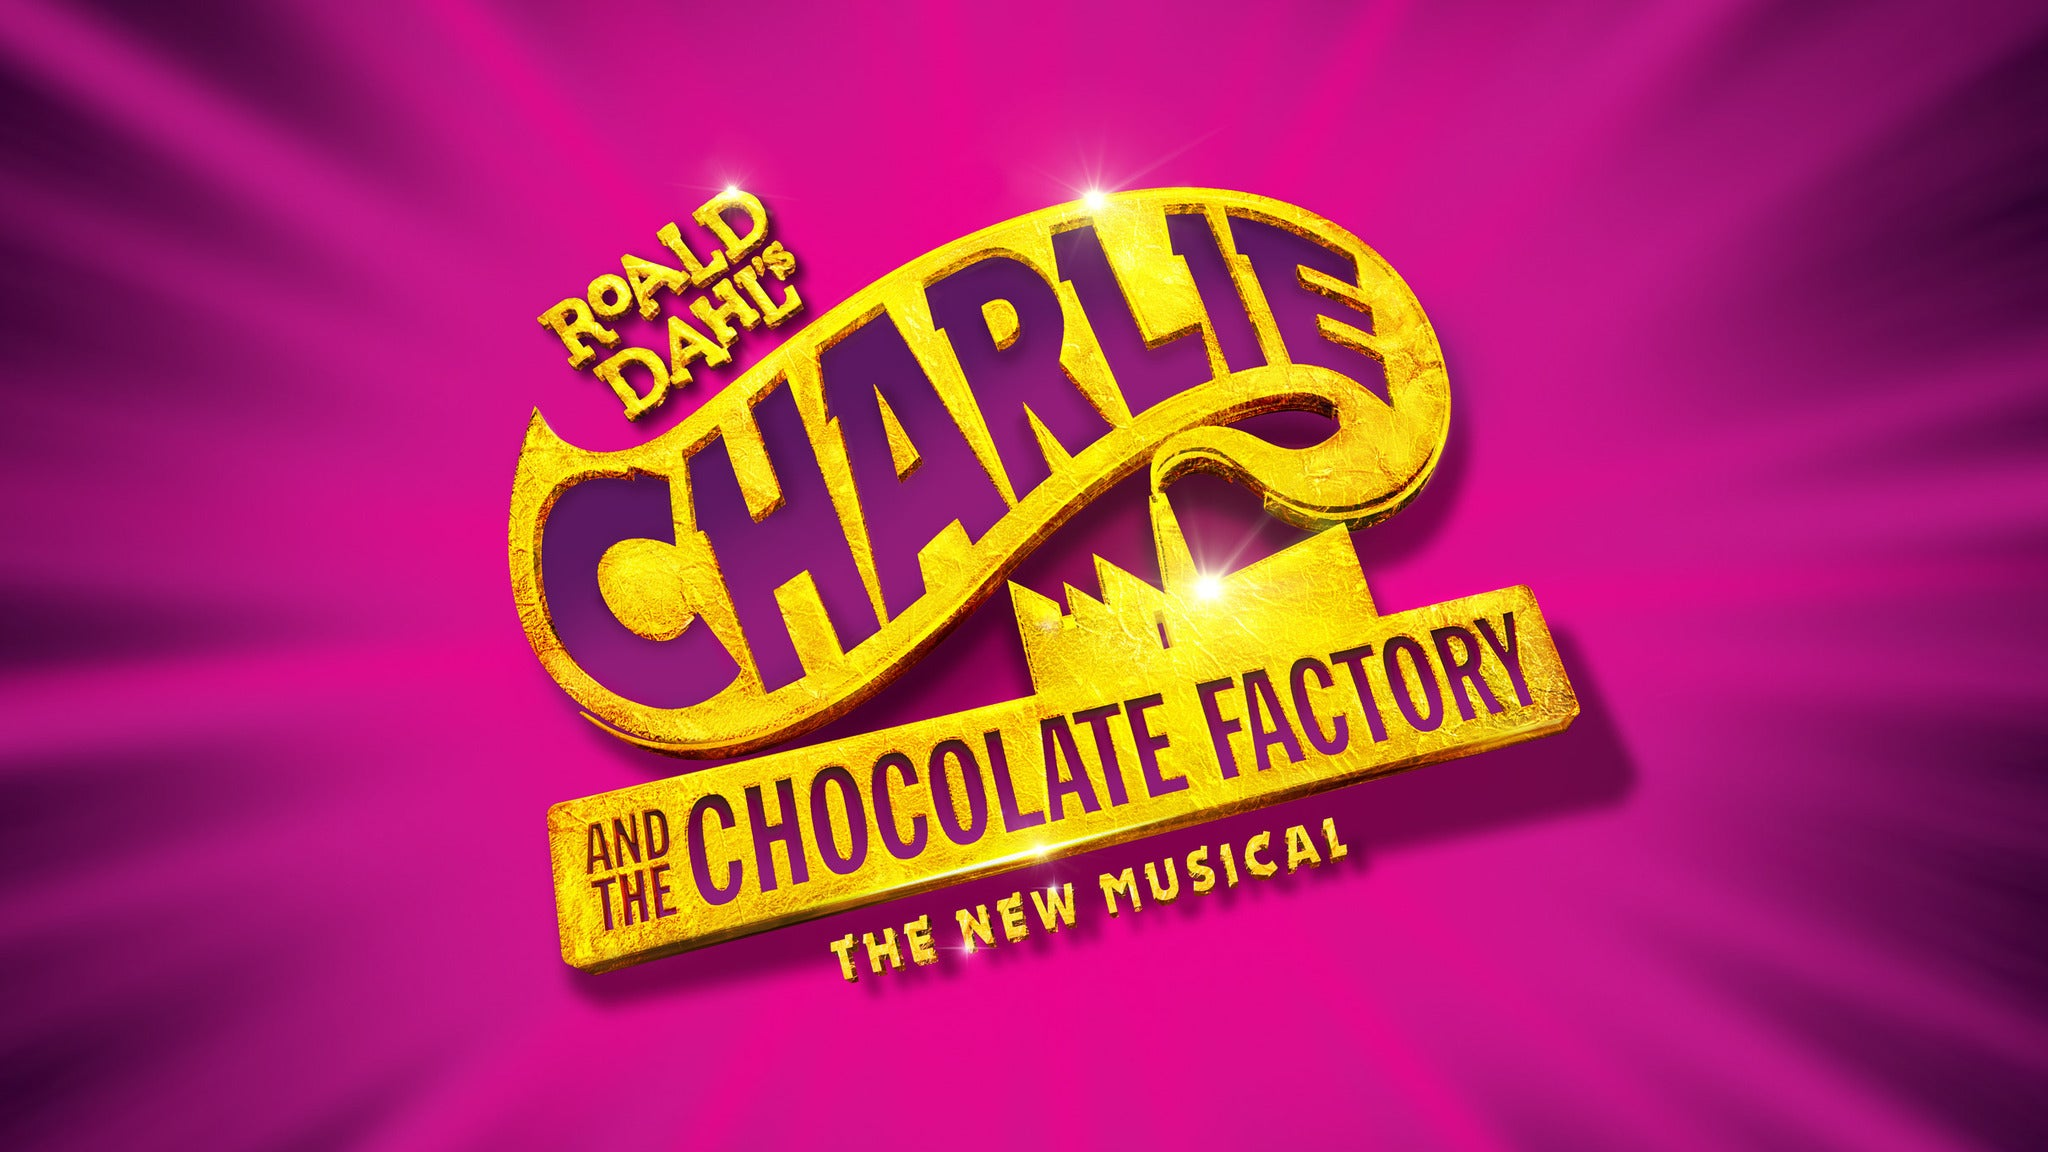 Charlie and the Chocolate Factory at Golden Gate Theater